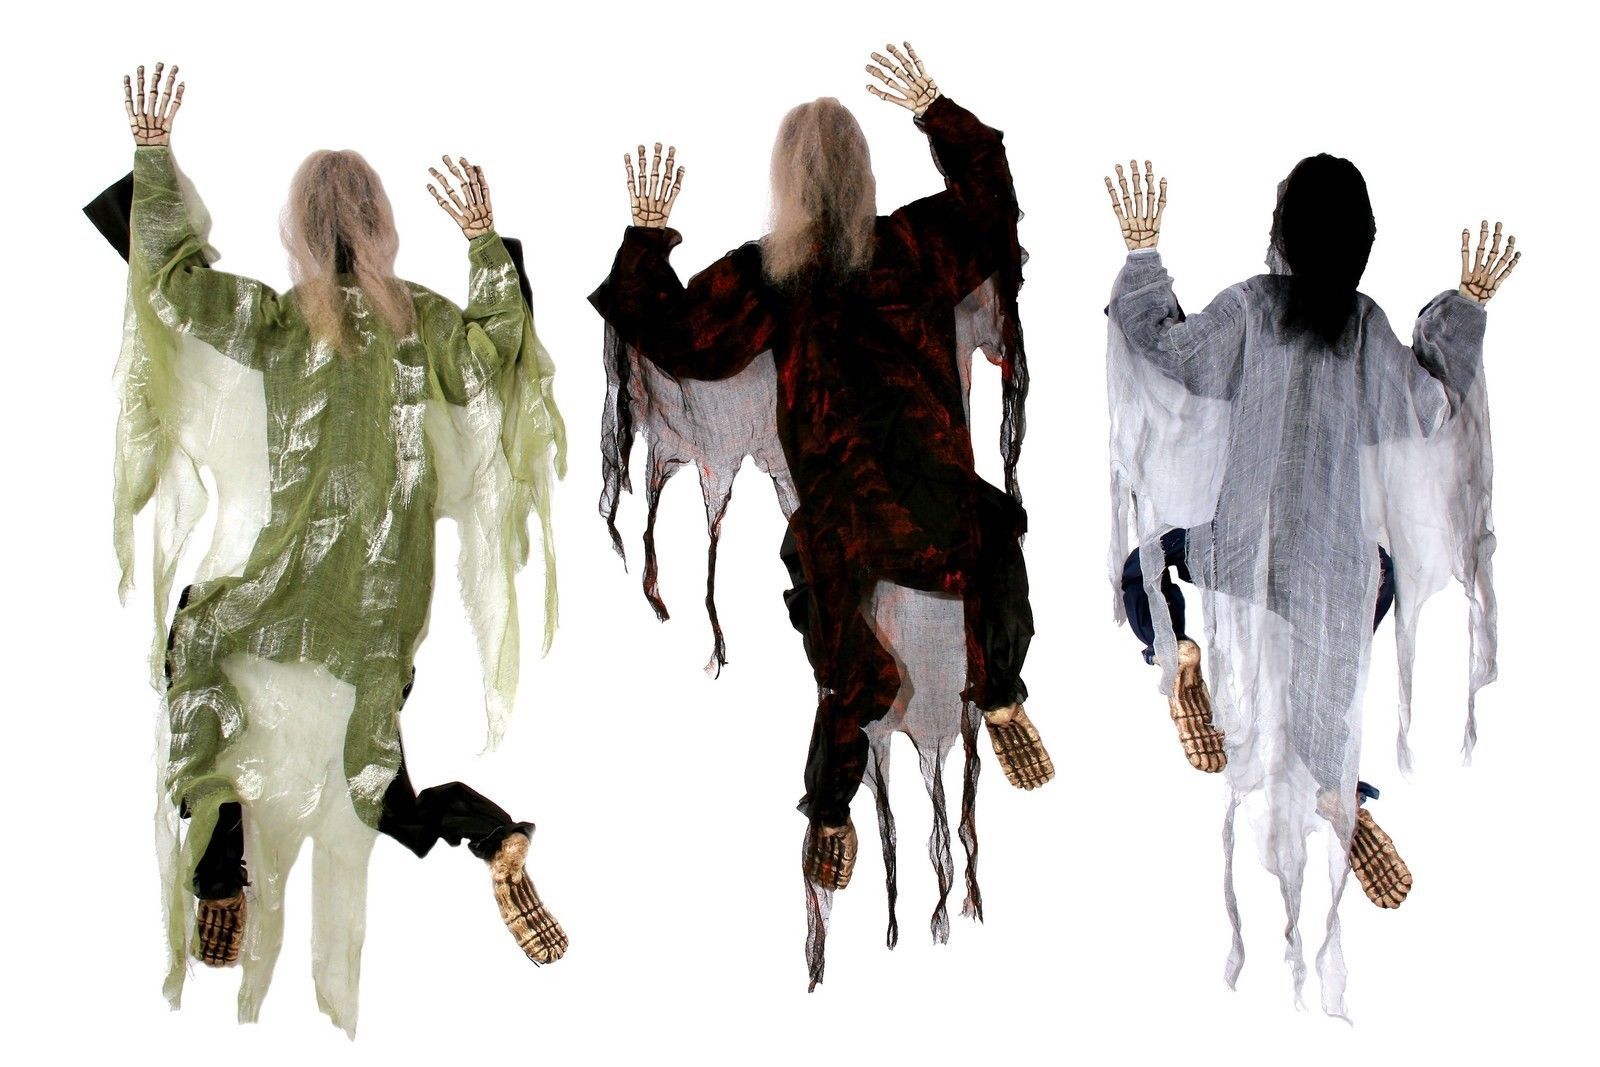 5 hanging climbing dead zombie monster prop decoration halloween wall decor - Decoration Halloween